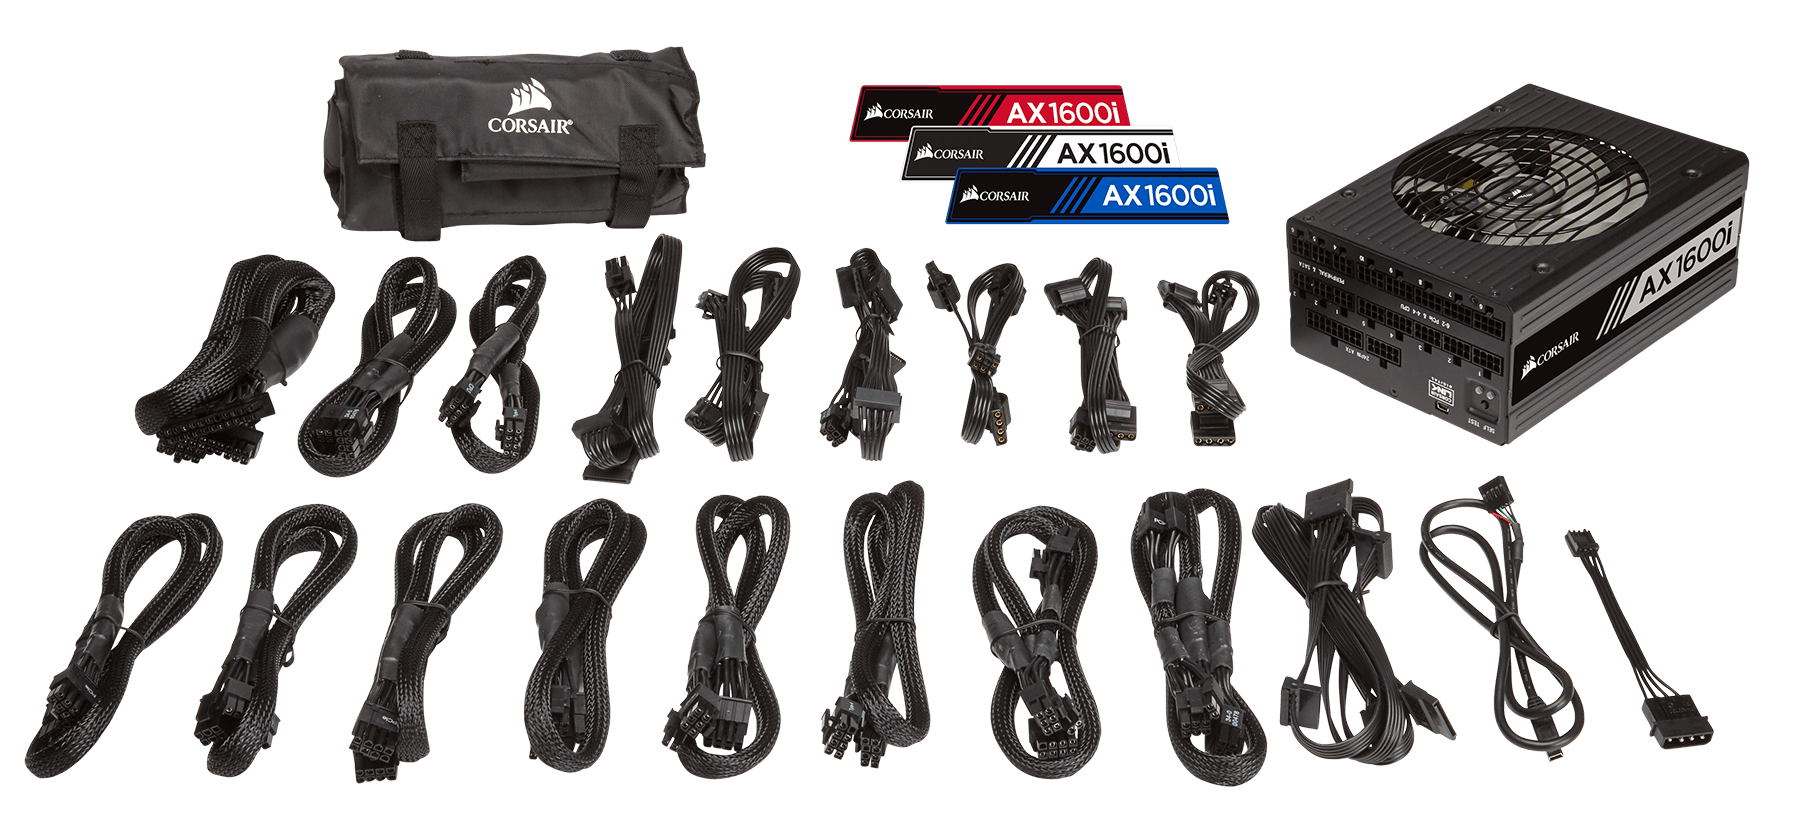 Corsair AX1600i Digital ATX Power Supply — 1600 Watt Fully-Modular PSU